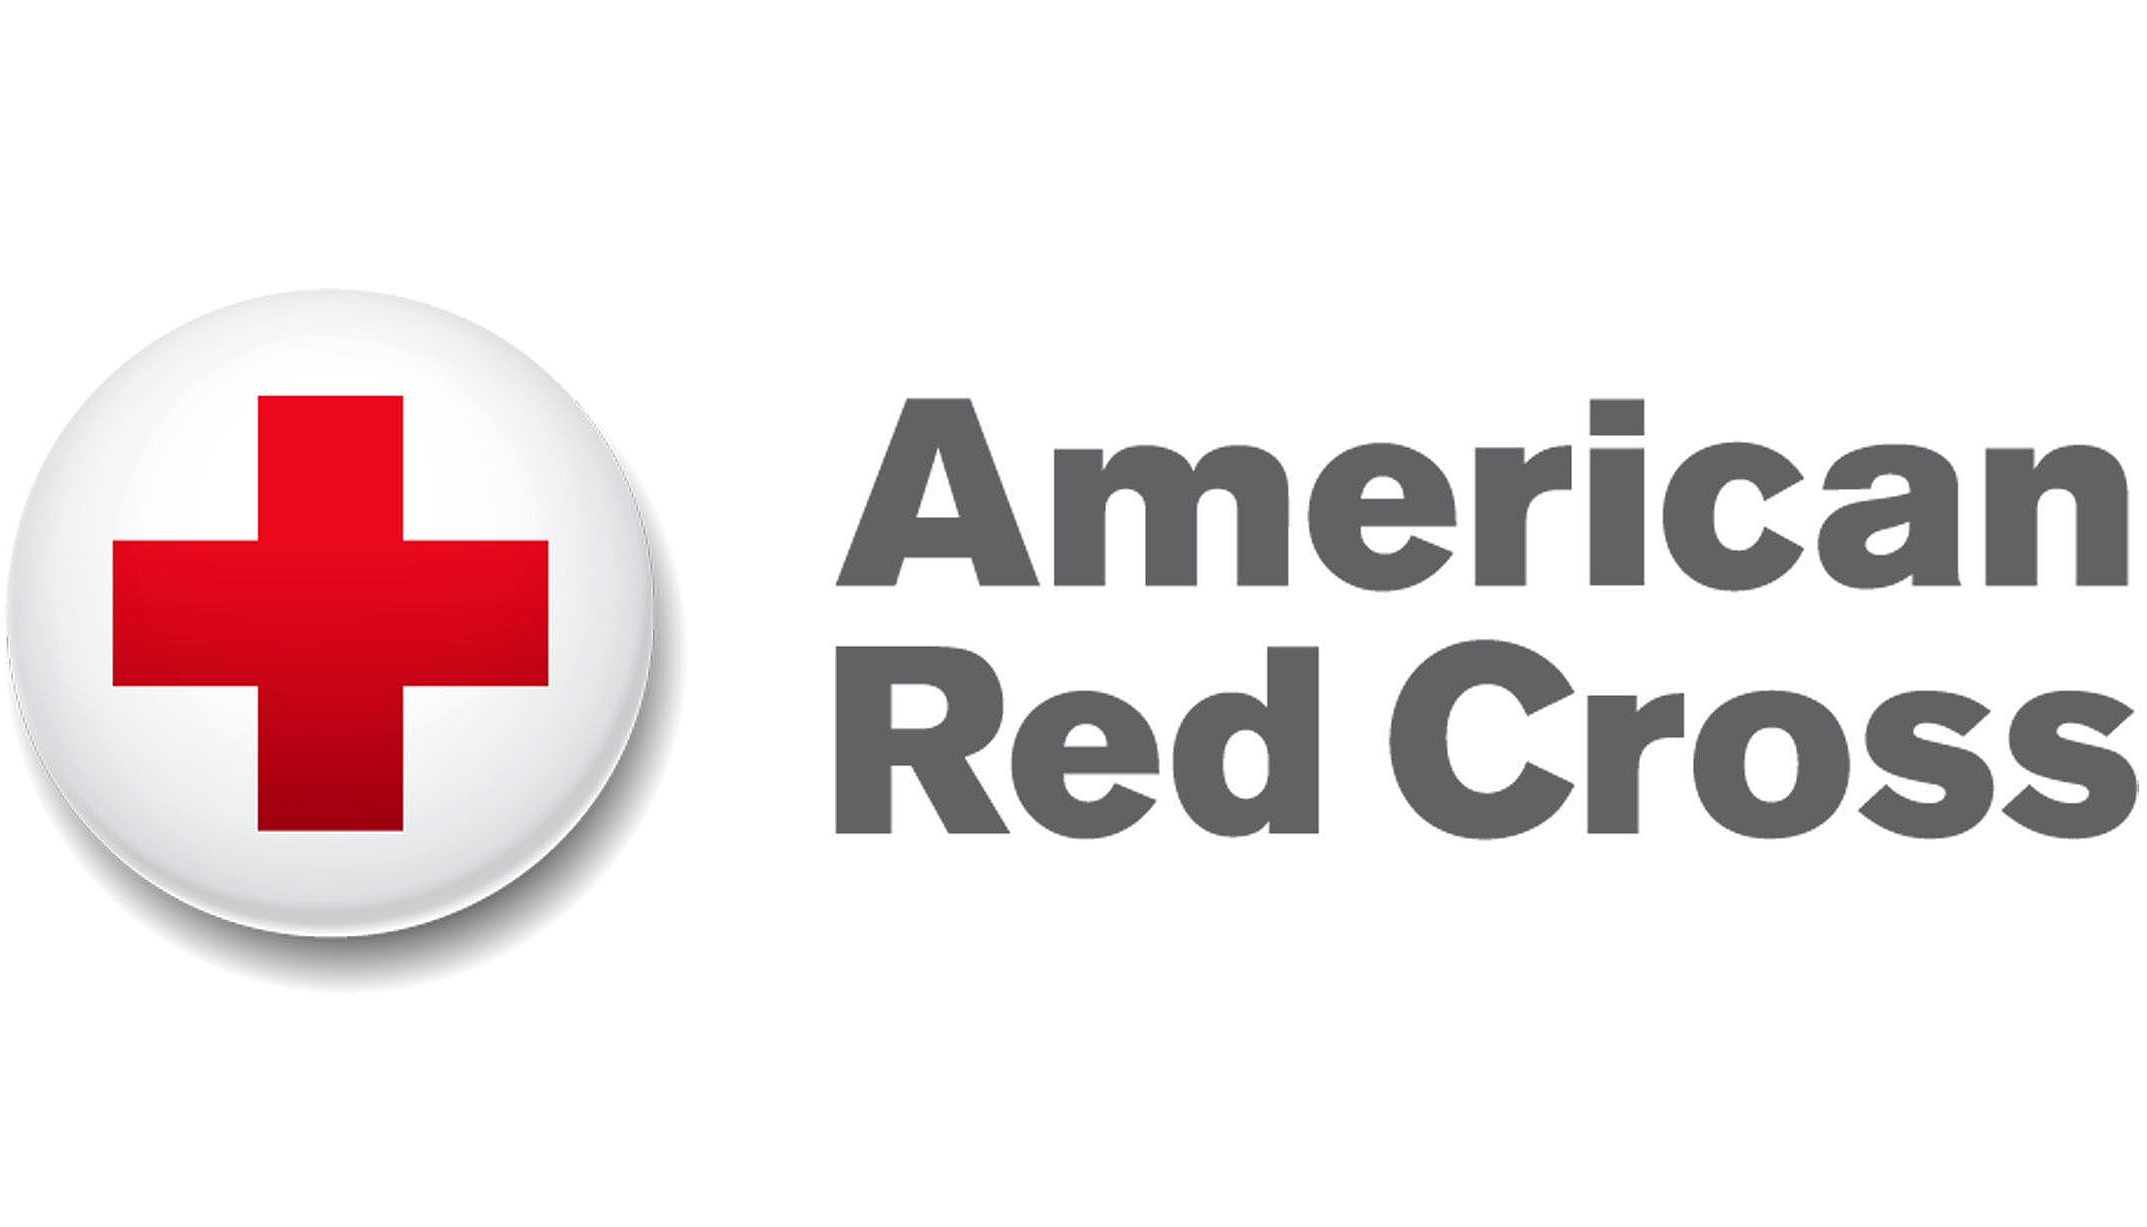 CAN YOU HELP?  The American Red Cross Needs Blood, Several Local Blood Drives Planned in February